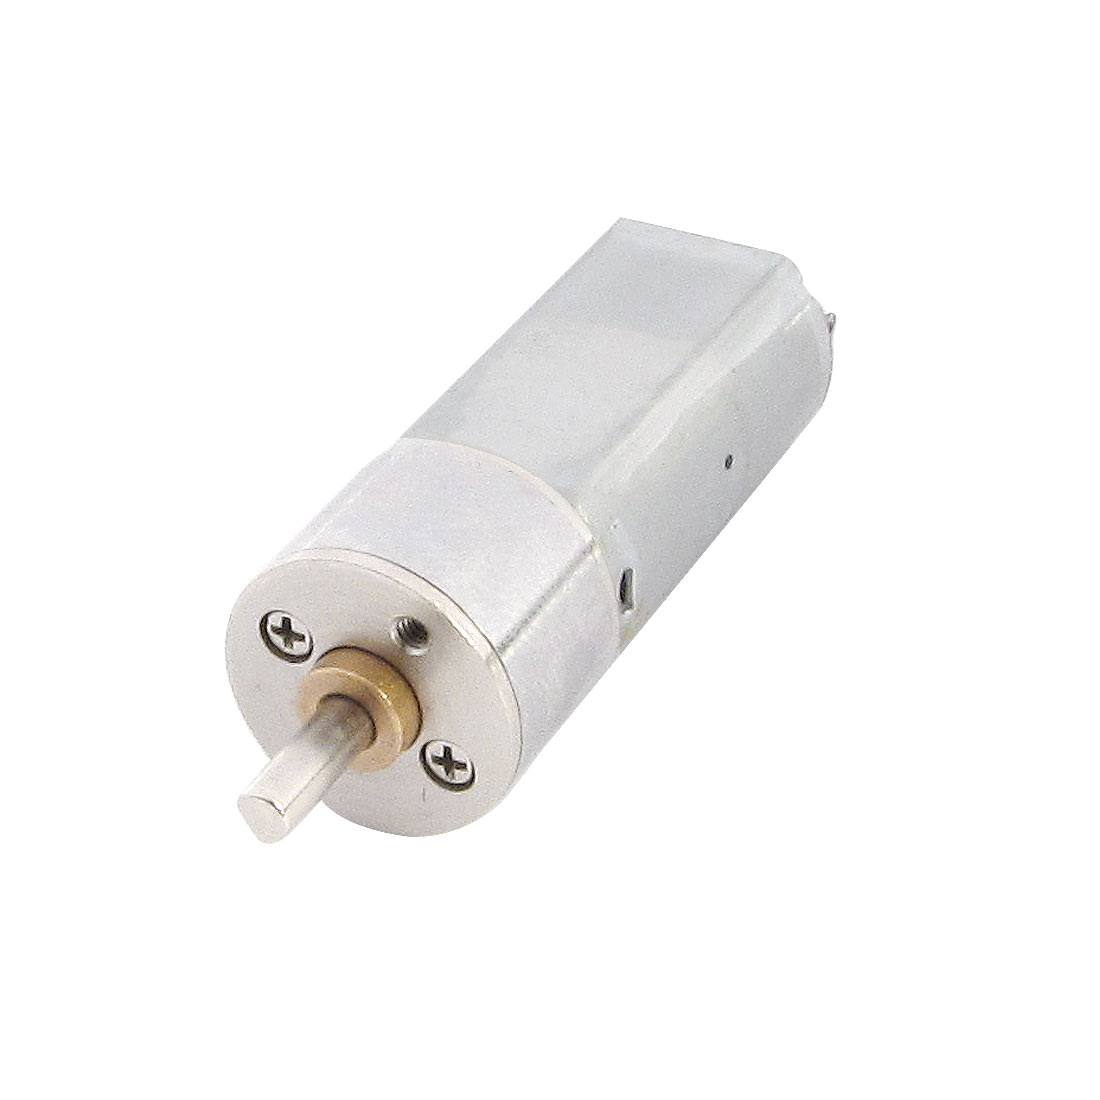 3mm-Dia-Shaft-2-Pin-Terminals-Magnetic-Electric-Geared-Motor-DC-12V-1000RPM